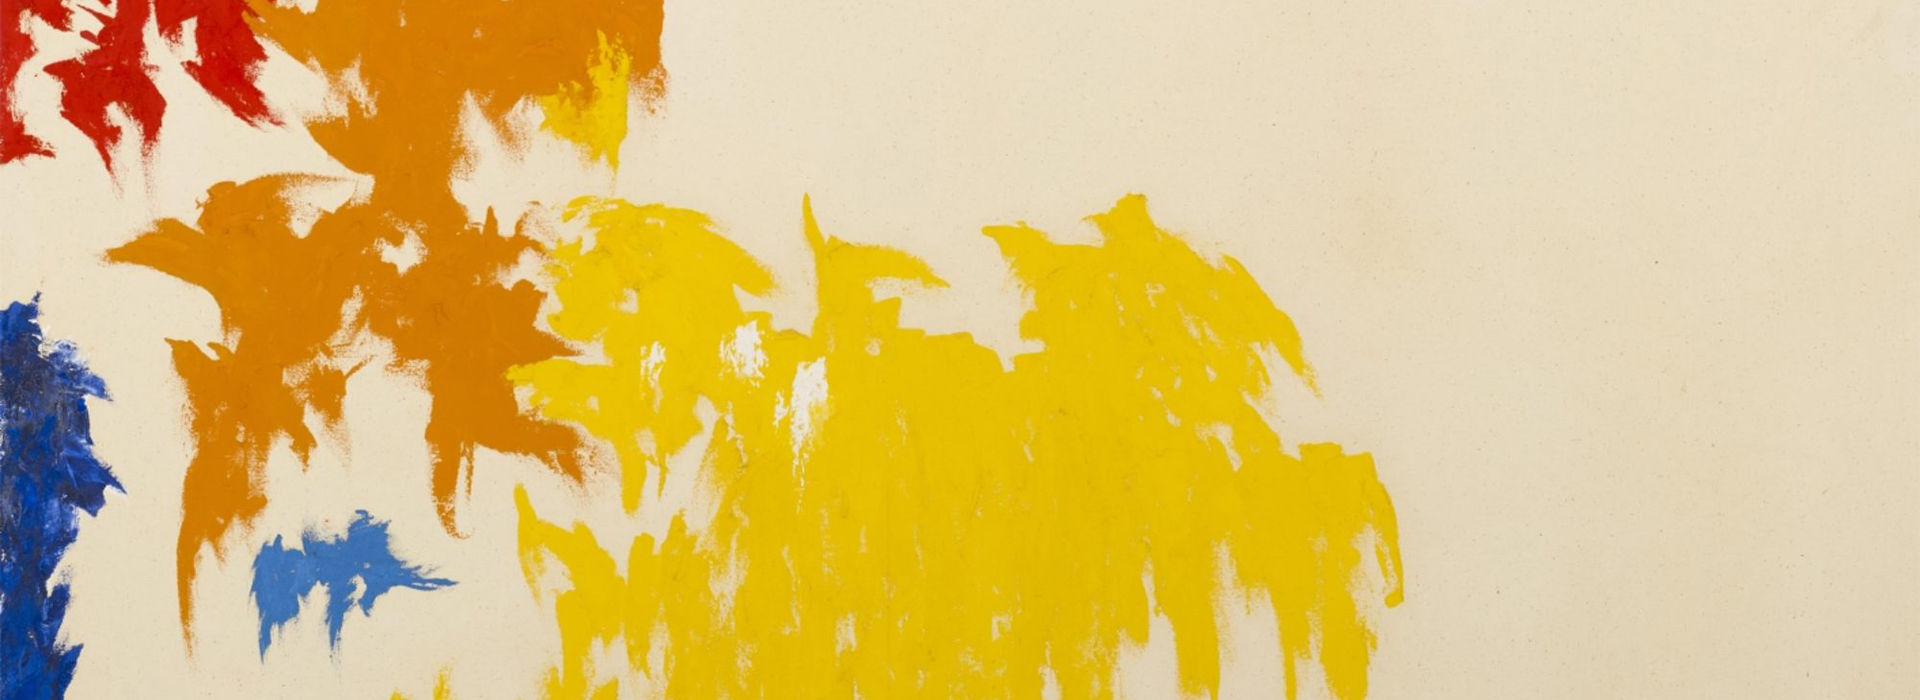 Detailed image of a colorful abstract painting by Clyfford Still with yellow, orange, red, light blue, and dark blue paint and bare canvas